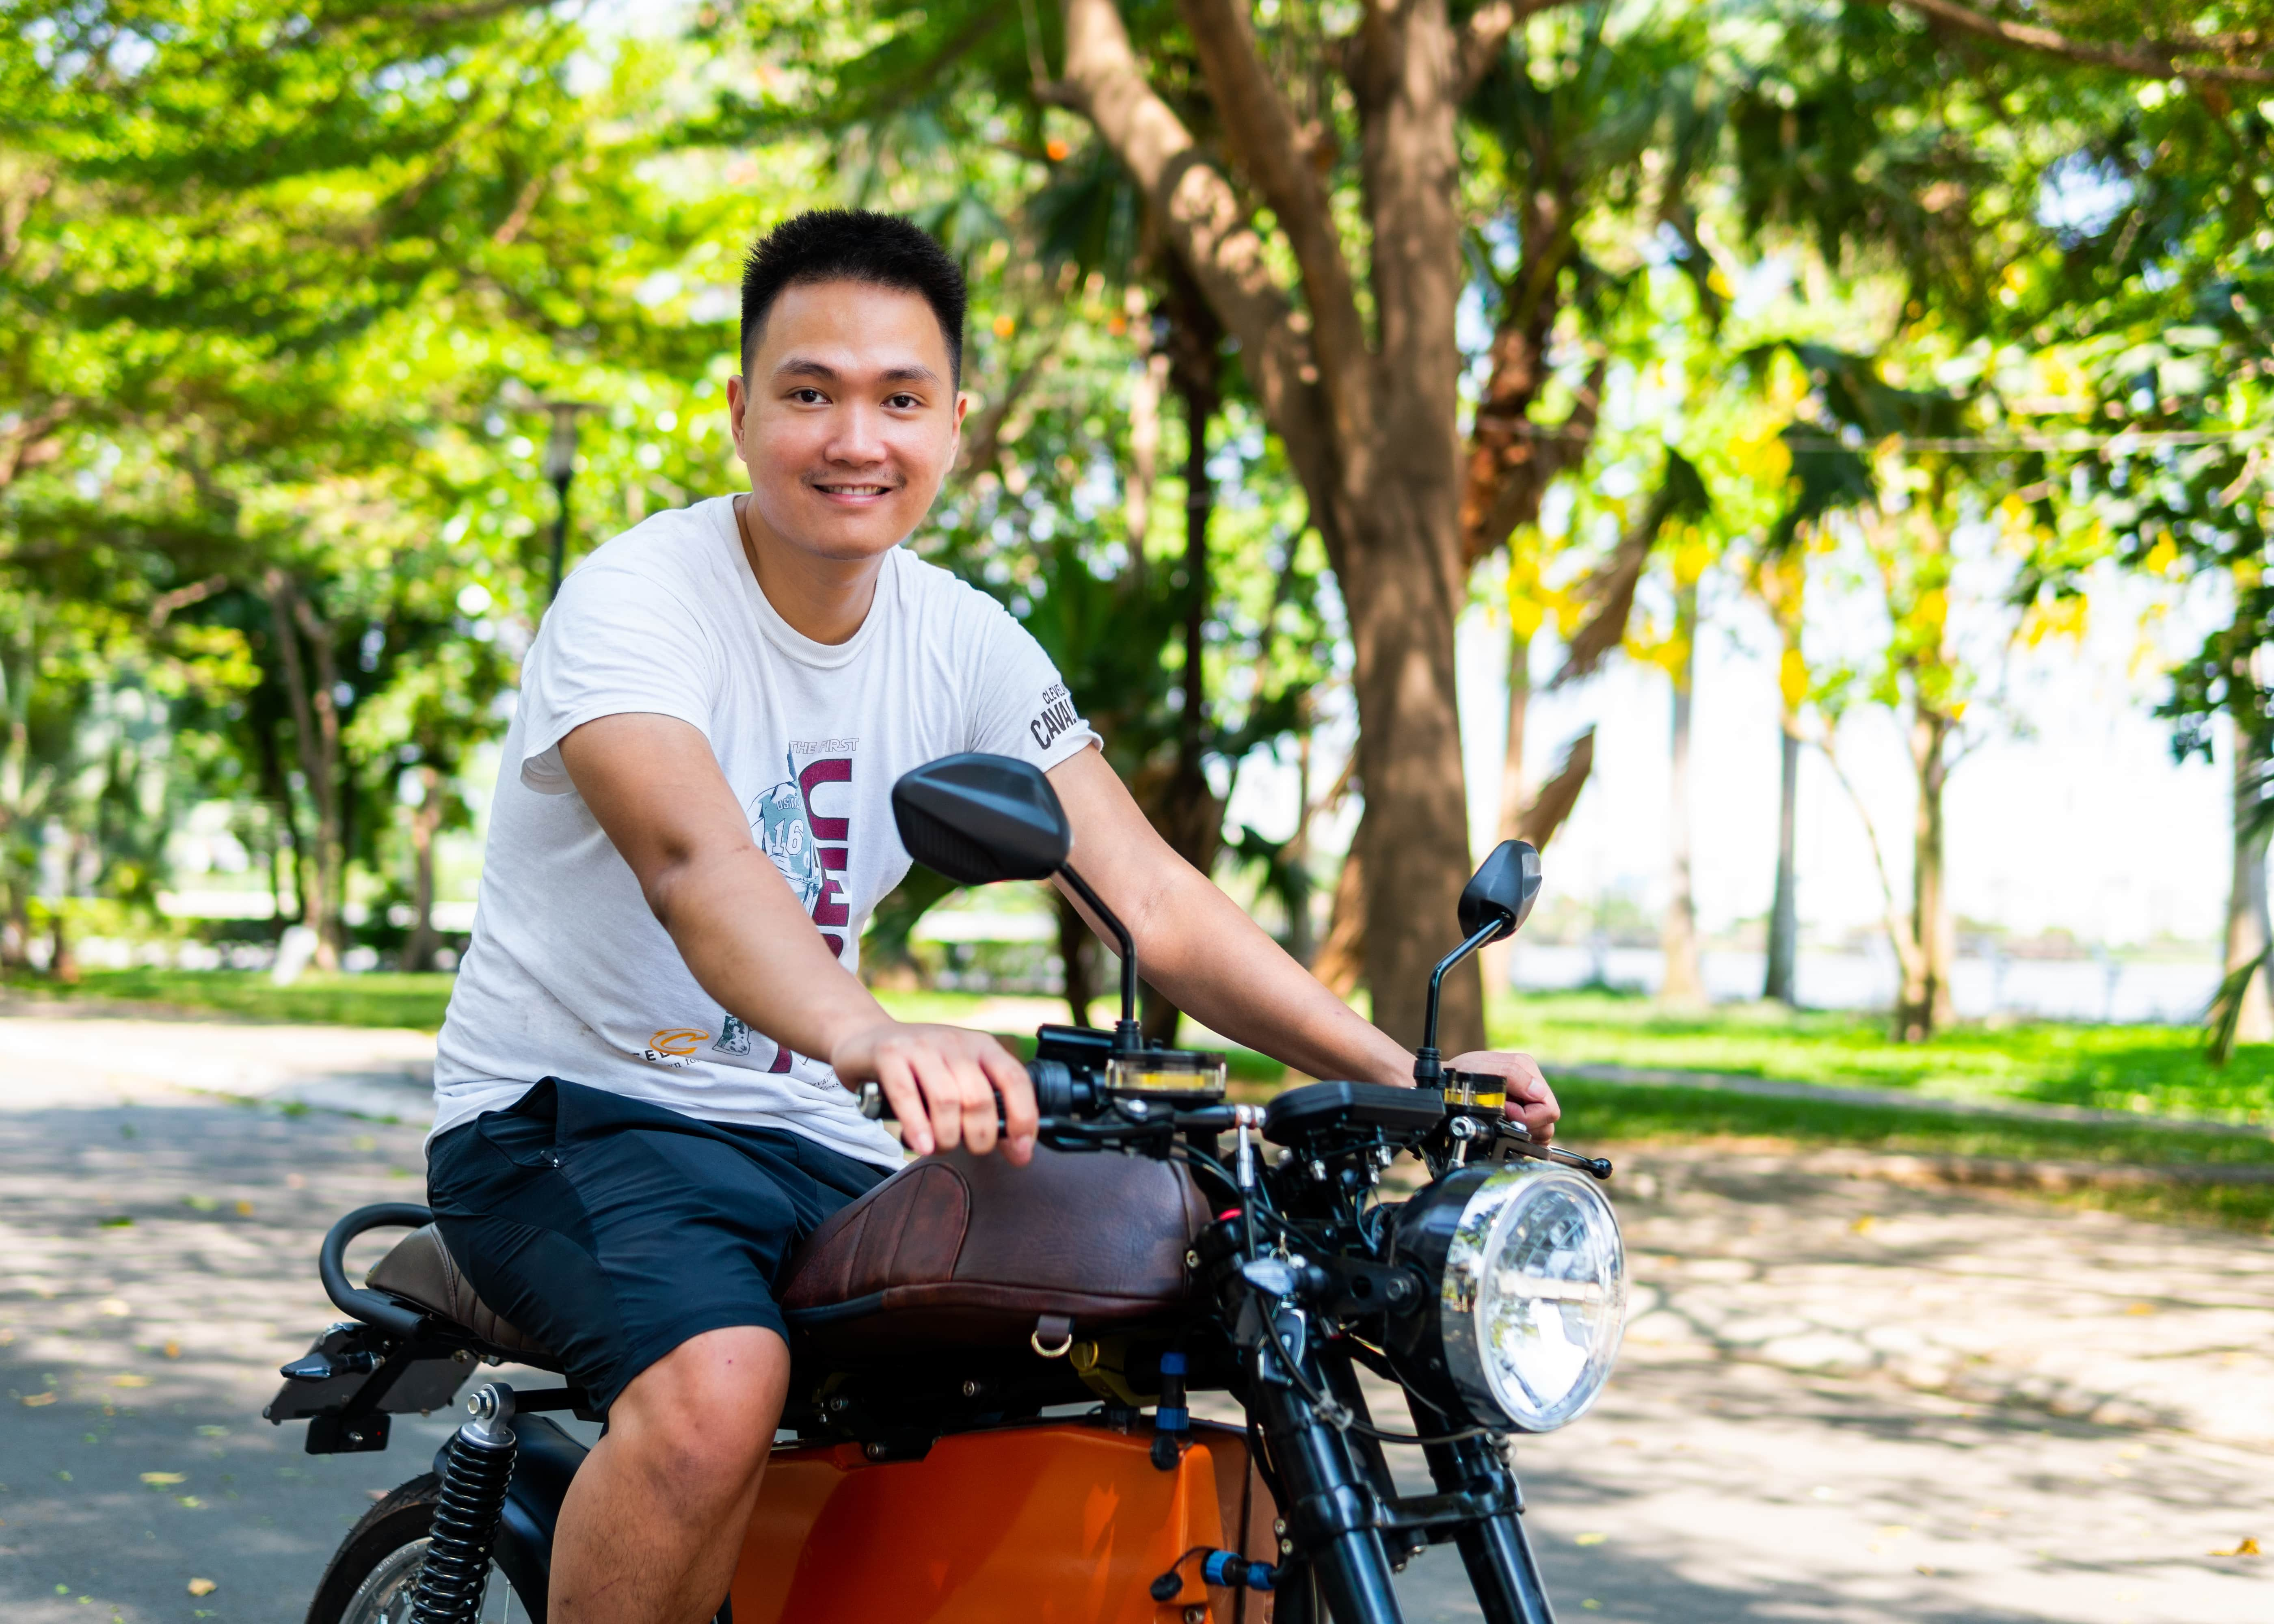 Son Nguyen, founder and ceo of Dat Bike on a of the startup's motorbikes